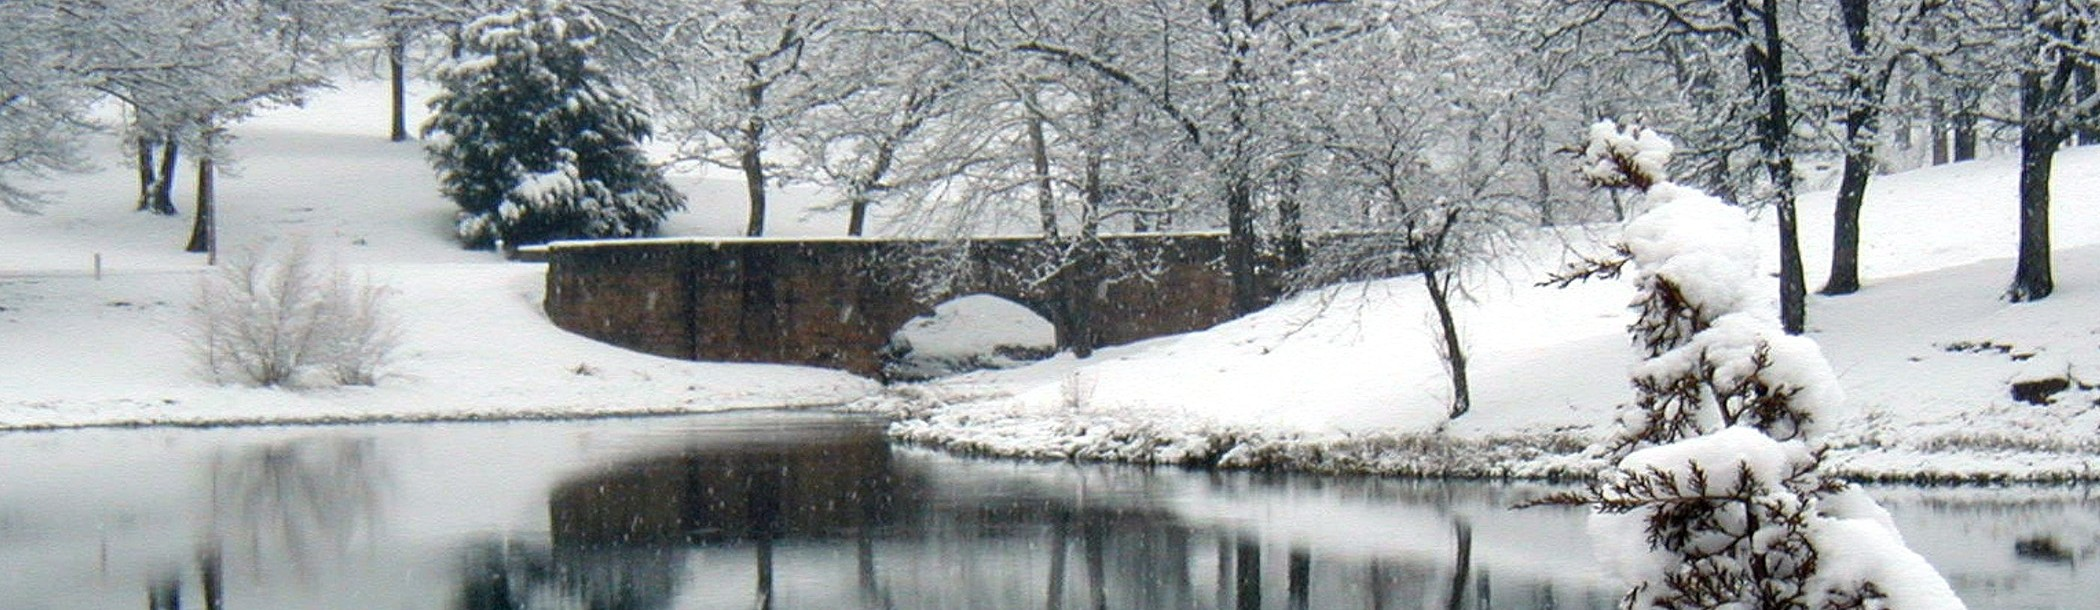 Bridge over a lake with surrounding area covered in snow.